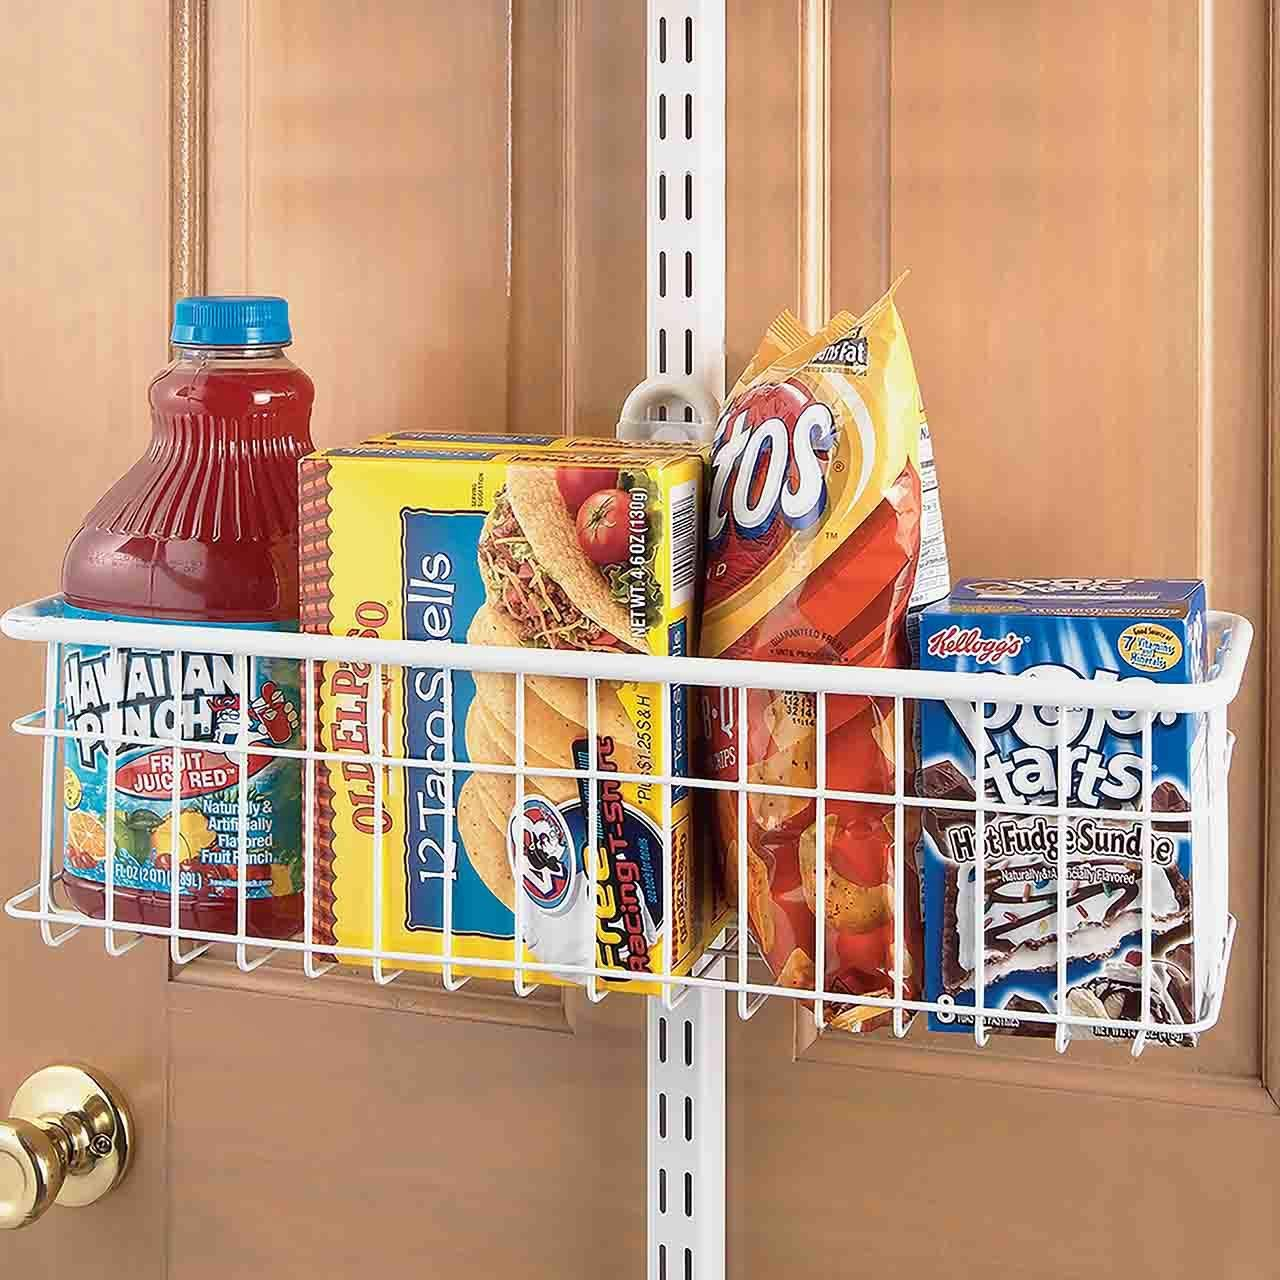 MD Group freedomRail Large Over Door Basket, 8.25'' x 7'' x 6.5 lbs by MD Group (Image #3)